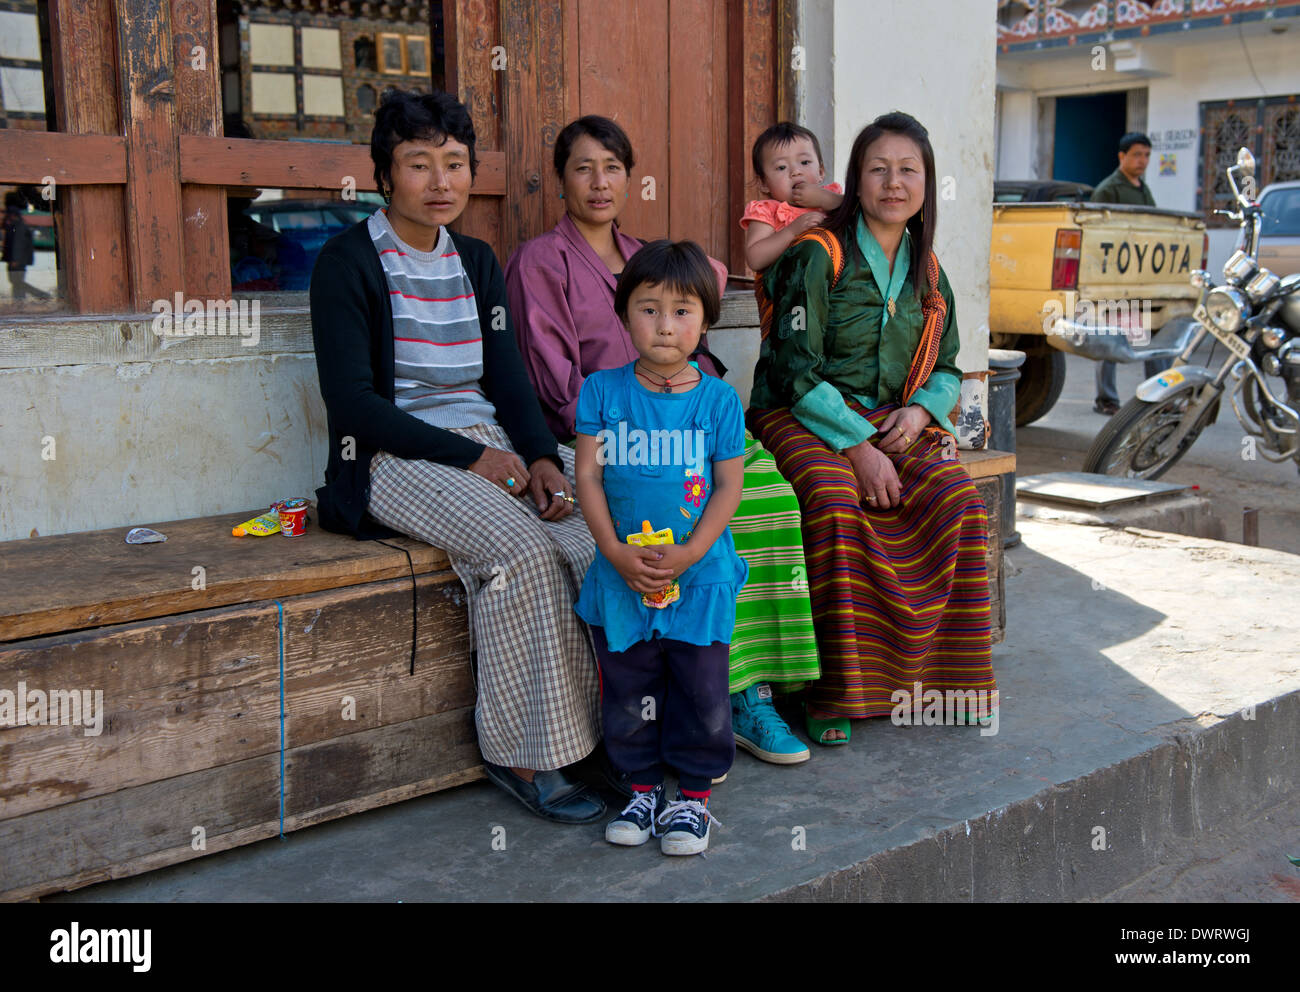 Mothers in national costumes with children sitting on a bench in the main street of Paro, Bhutan - Stock Image